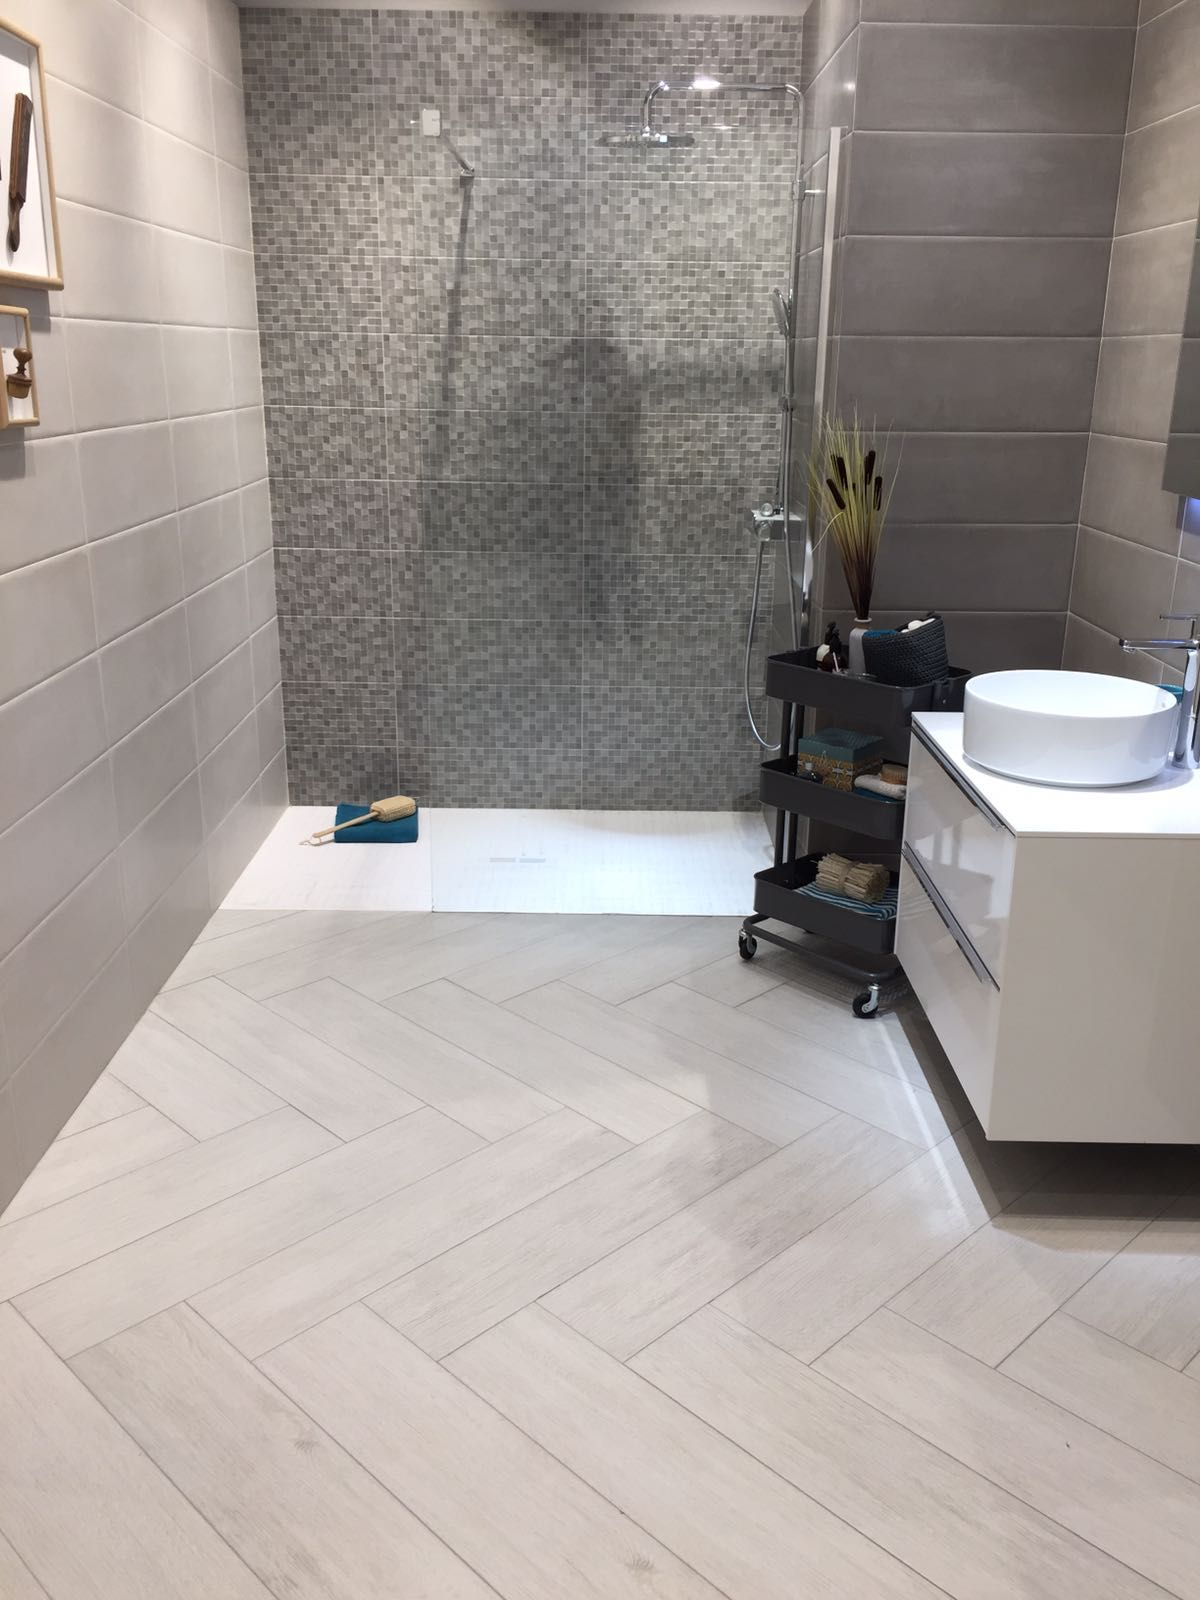 Roca at cevisama 2017 roca at cevisama 2017 pinterest tile roca tile usa is a world wide leader in manufacturing distributing and marketing of high quality ceramic tiles dailygadgetfo Images